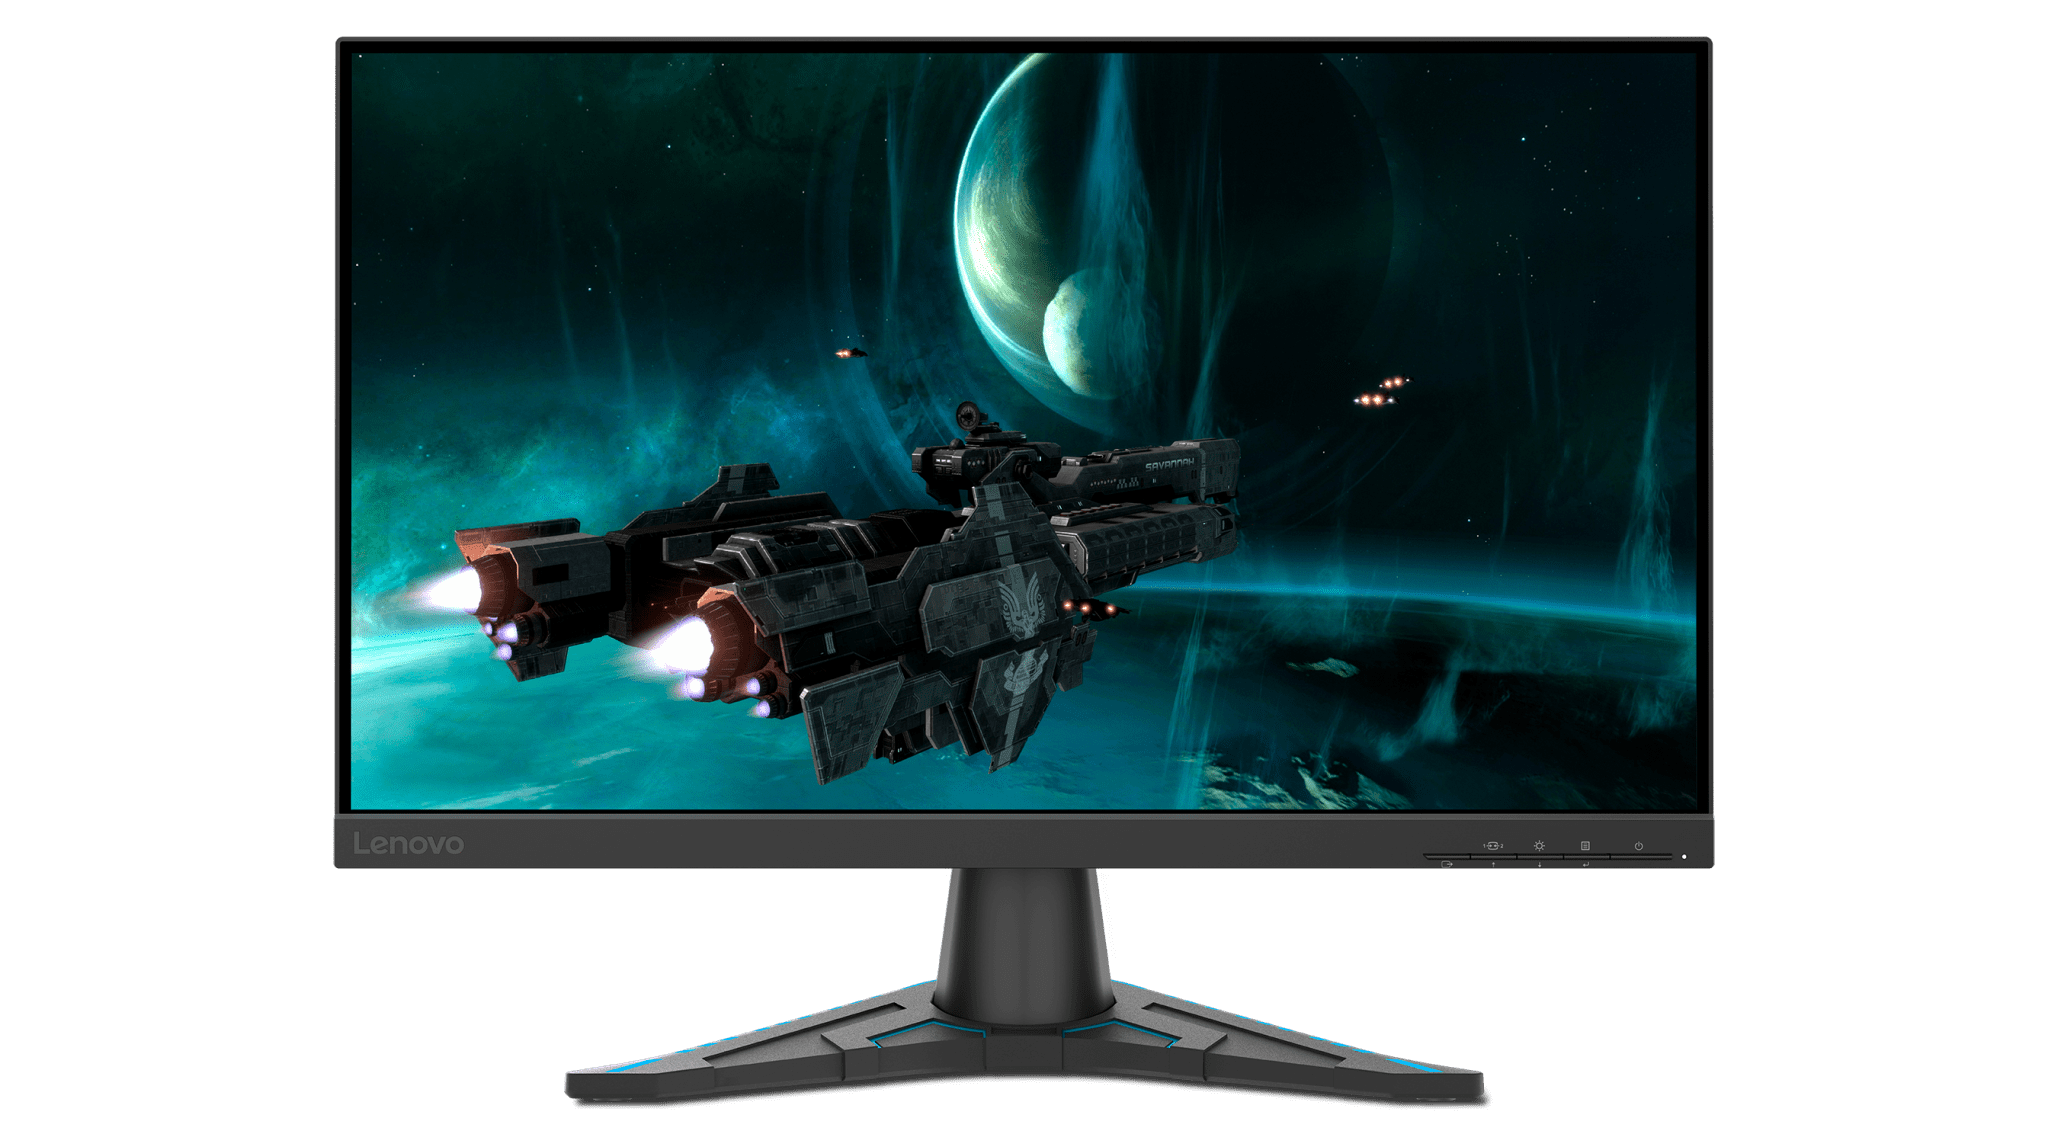 Tilt your Lenovo G24e-20 Monitor for more comfortable gameplay and less eye and neck strain